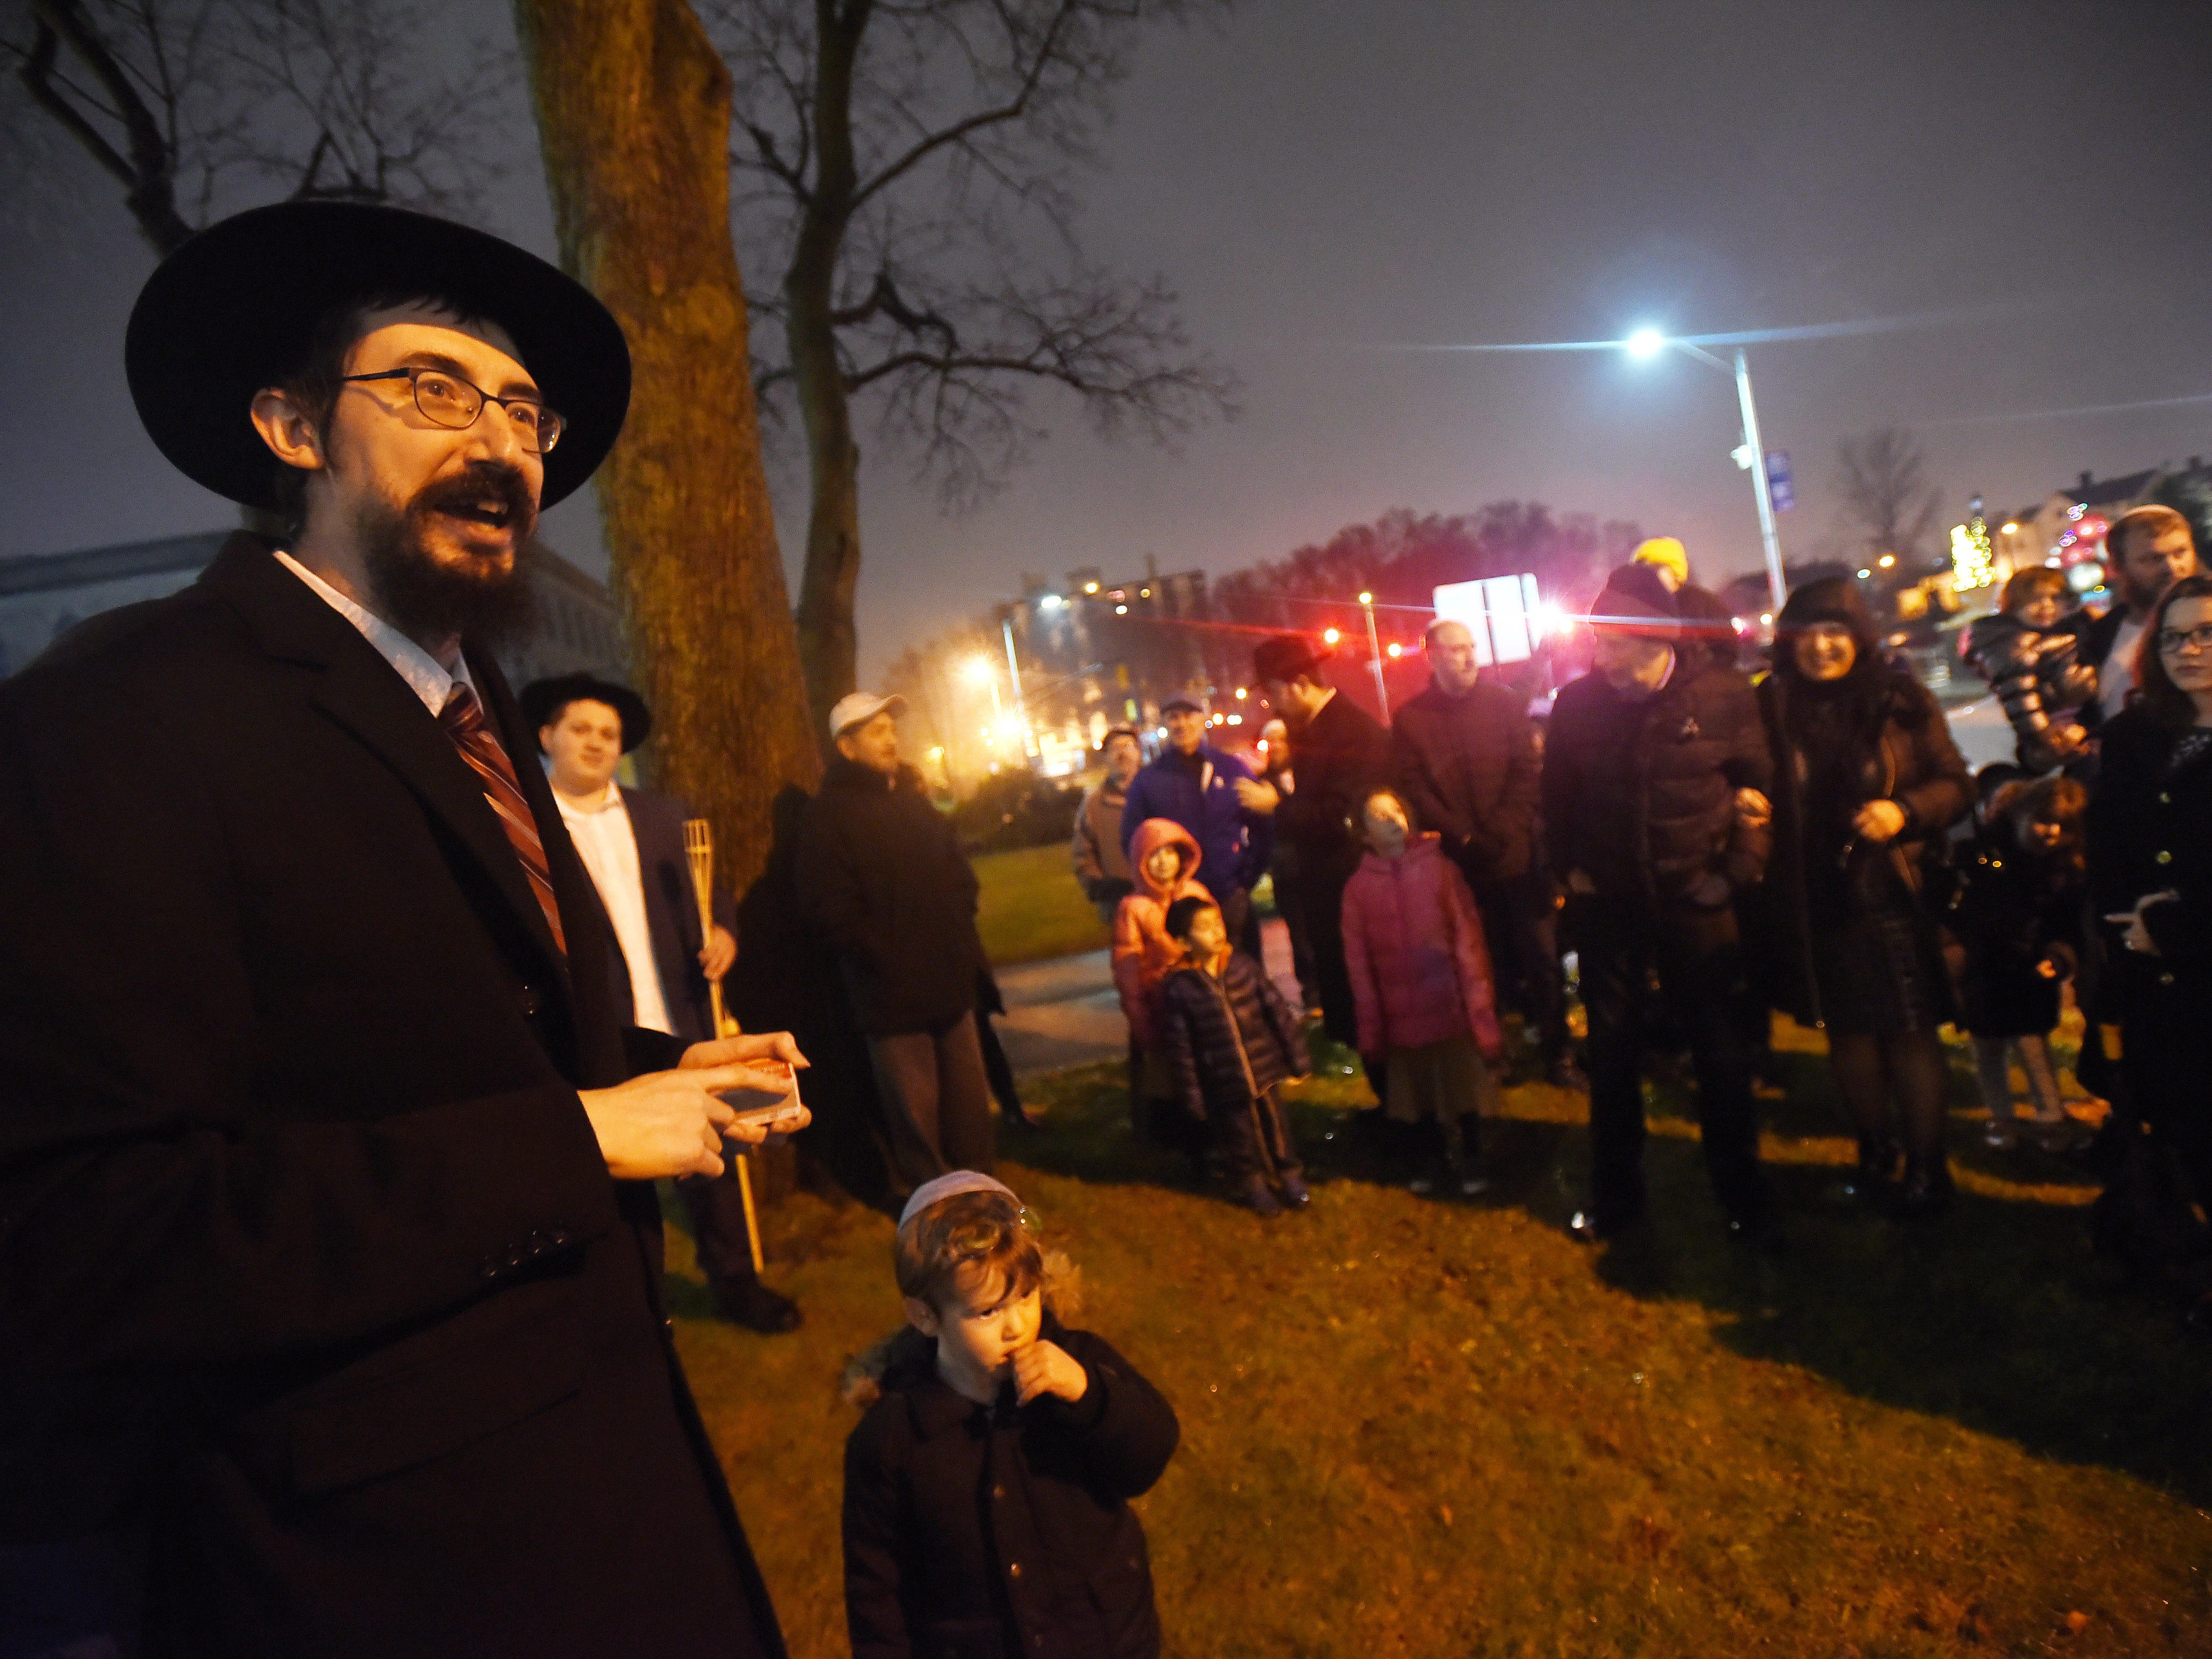 Rabbi Mendy Kaminker from Chabad of Hackensack, speaks to participants prior the lighting ceremony to celebrate the 2018 Hanukkah season at the front lawn of Bergen County Courthouse in Hackensack on 12/02/18.